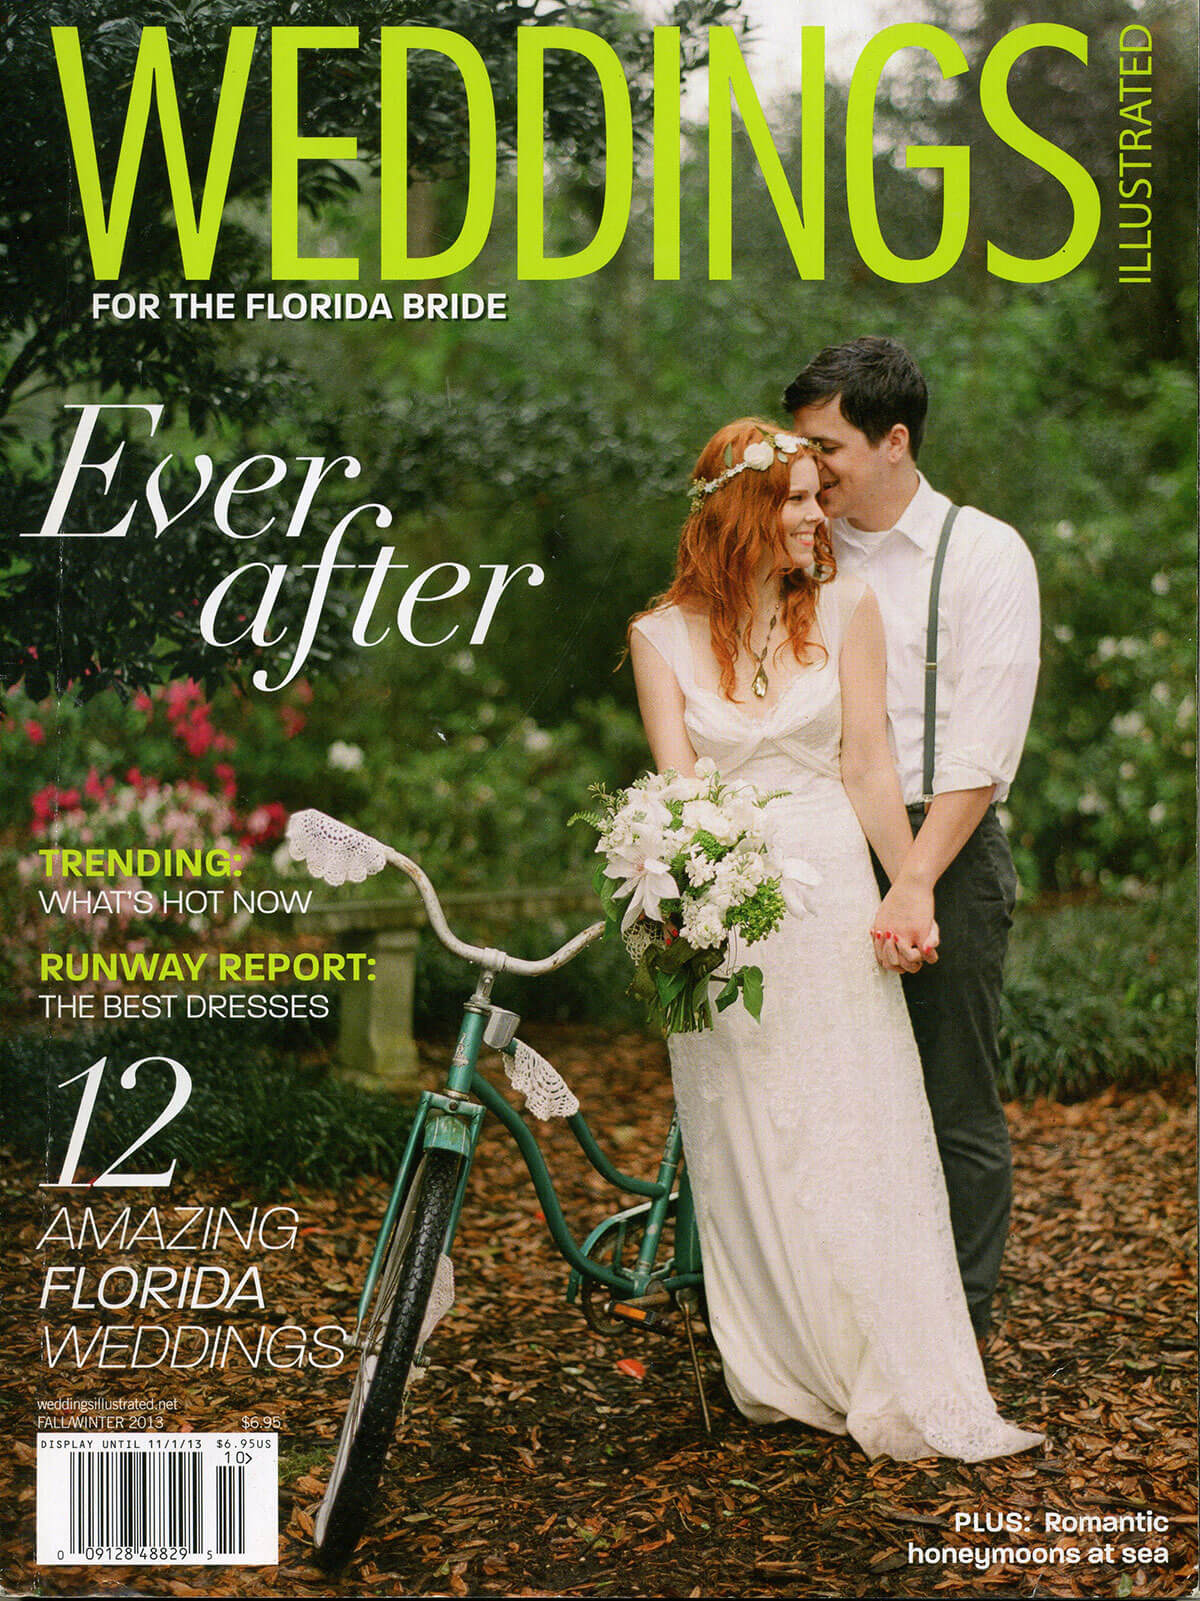 Weddings Illustrated Magazine - Featuring Isn't She Lovely